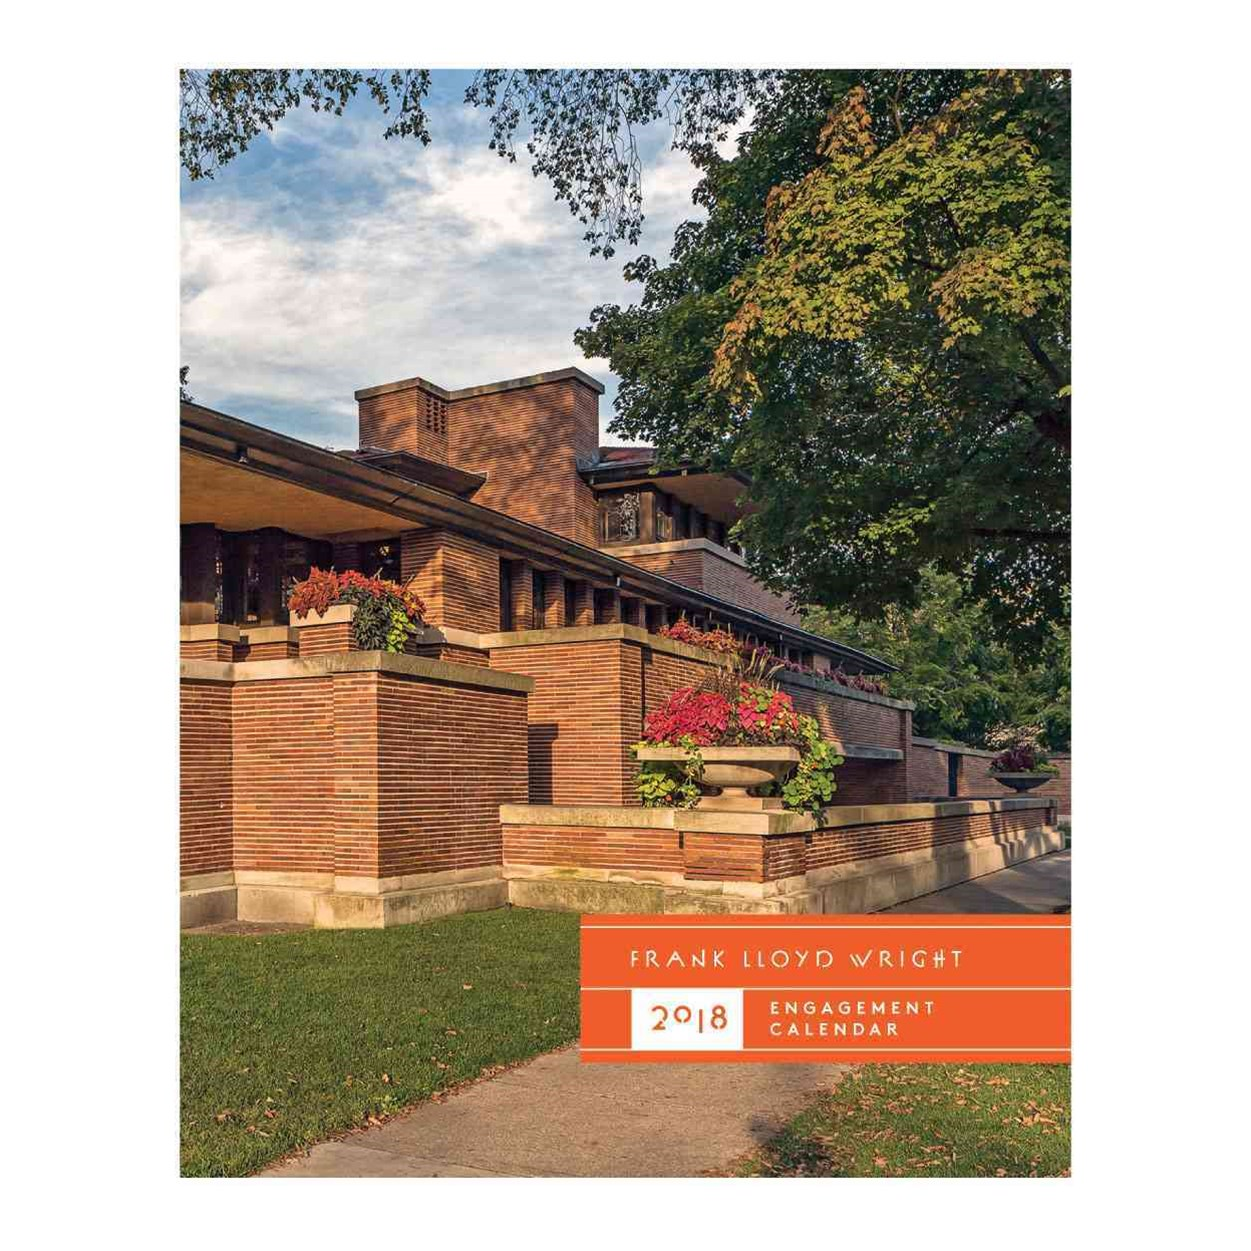 Frank Lloyd Wright 2018 Engagement Calendar